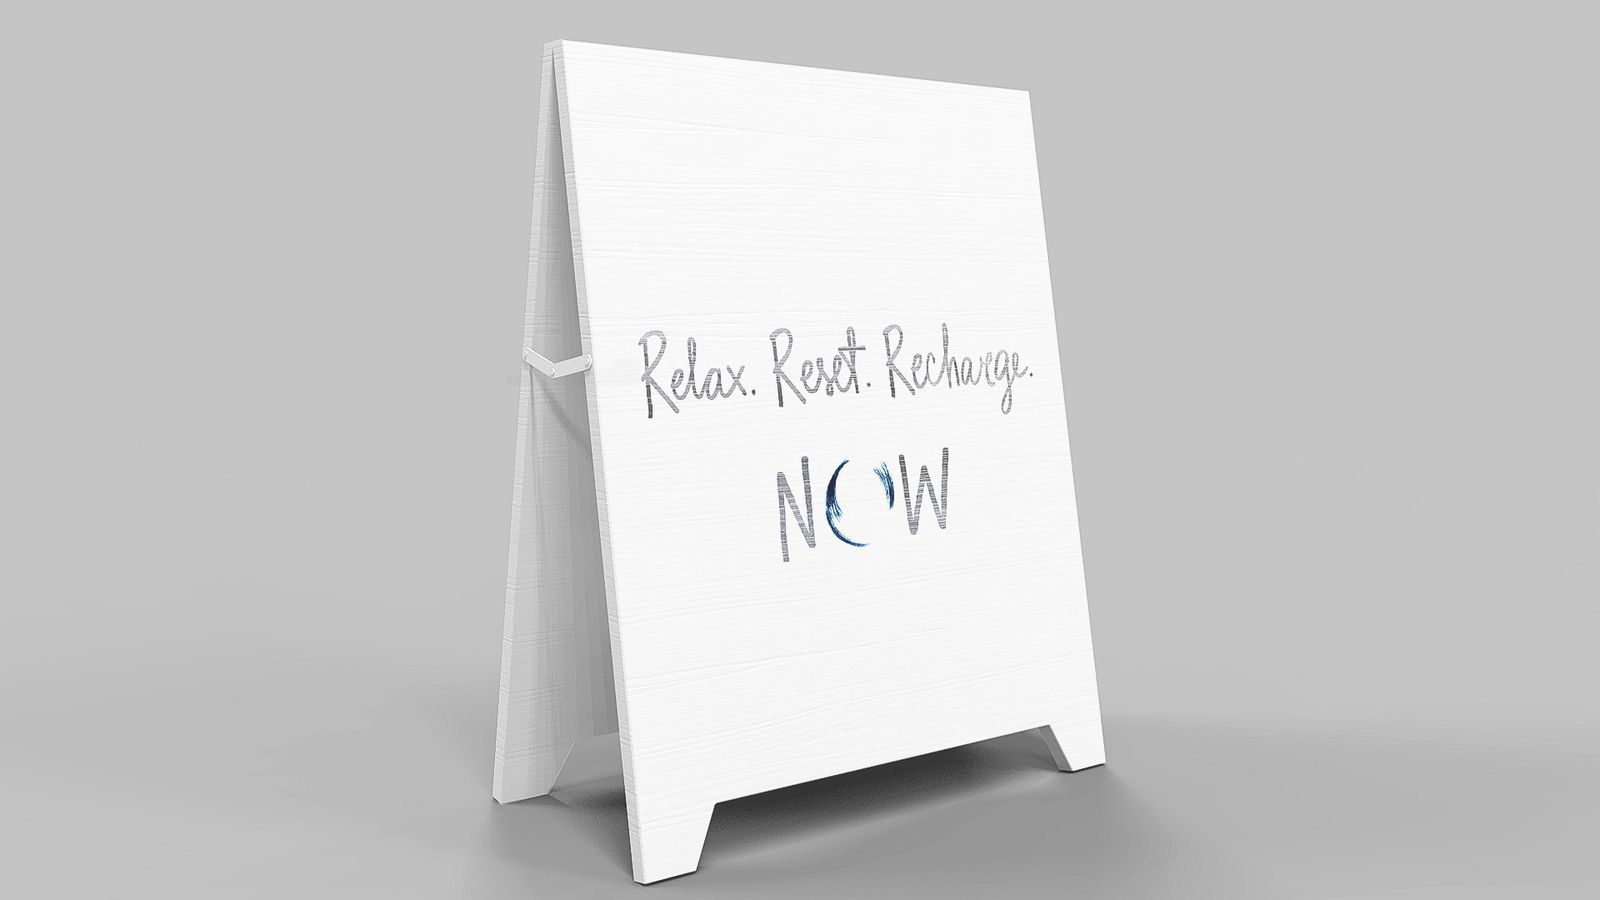 sandwich board 3d rendering